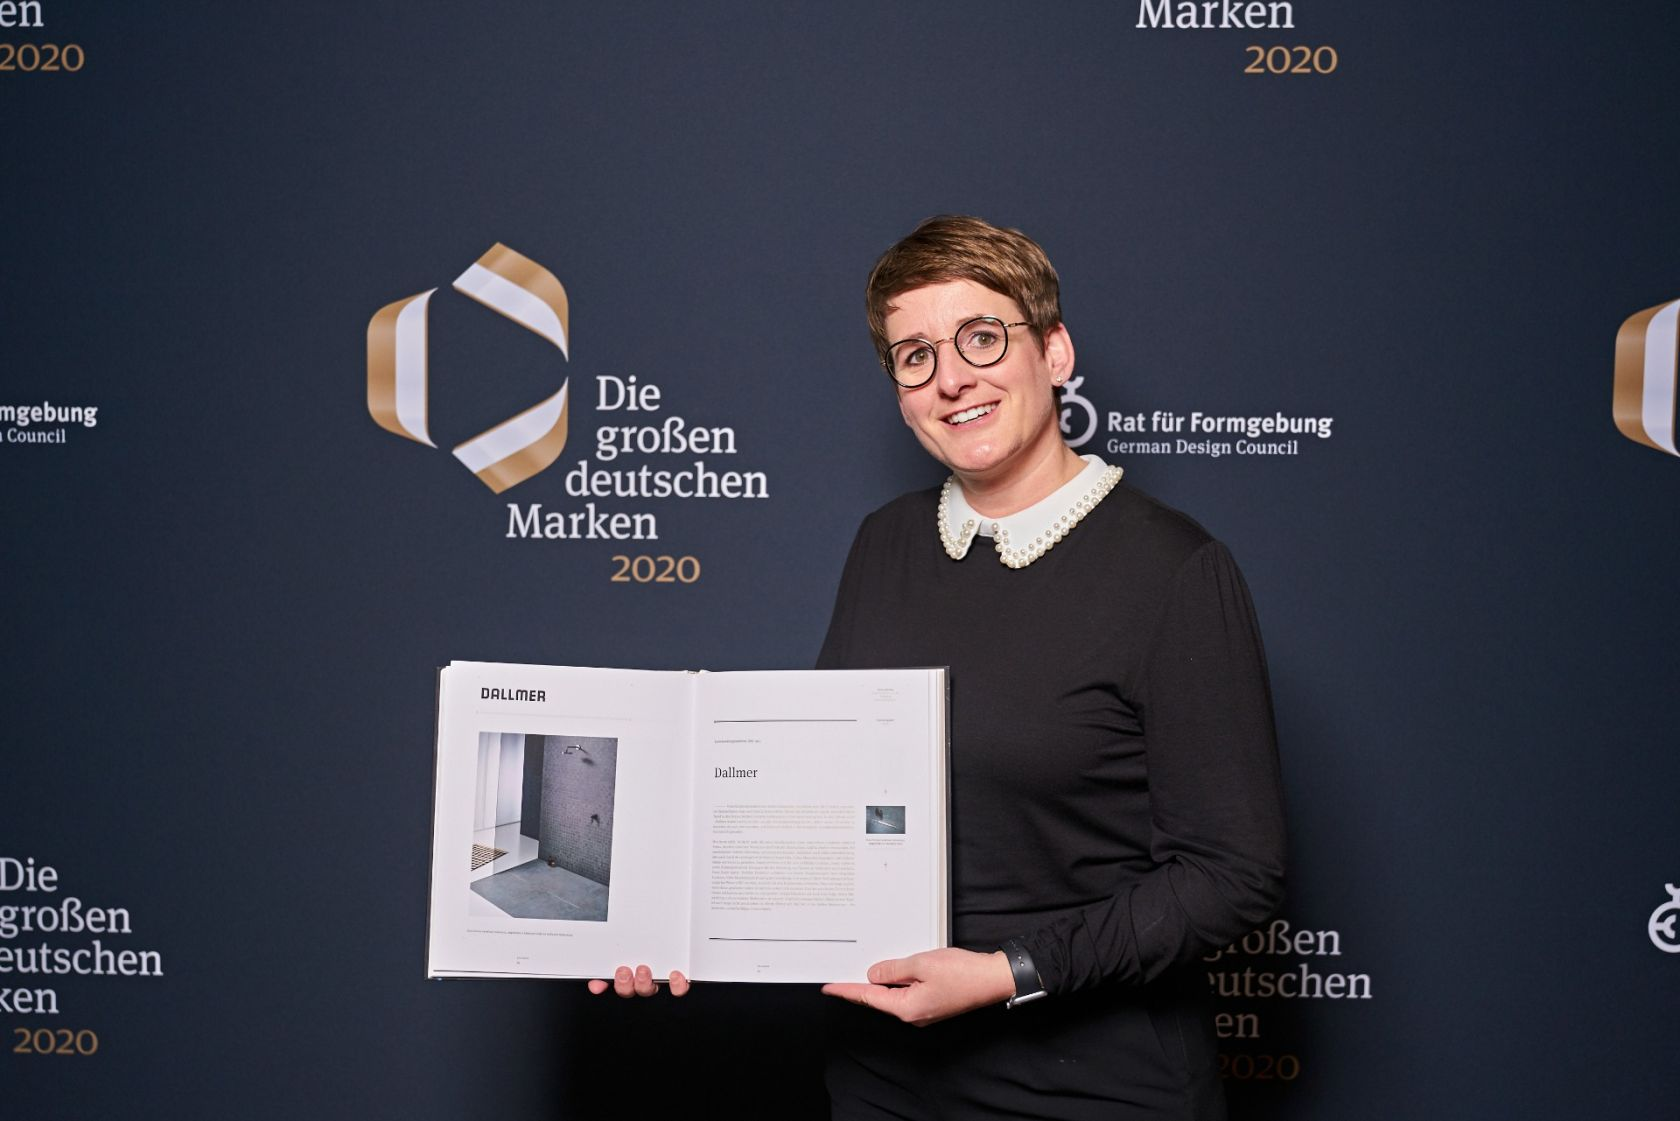 Recently, the seventh edition of the book 'The Major German Brands' was presented in Berlin. Yvonne Dallmer, Managing Director of Dallmer GmbH + Co. KG, proudly shows off her company's mention in the publication of the German Design Council. (Photo:  German Design Council / photography:Martin Diepold, Grand Visions)